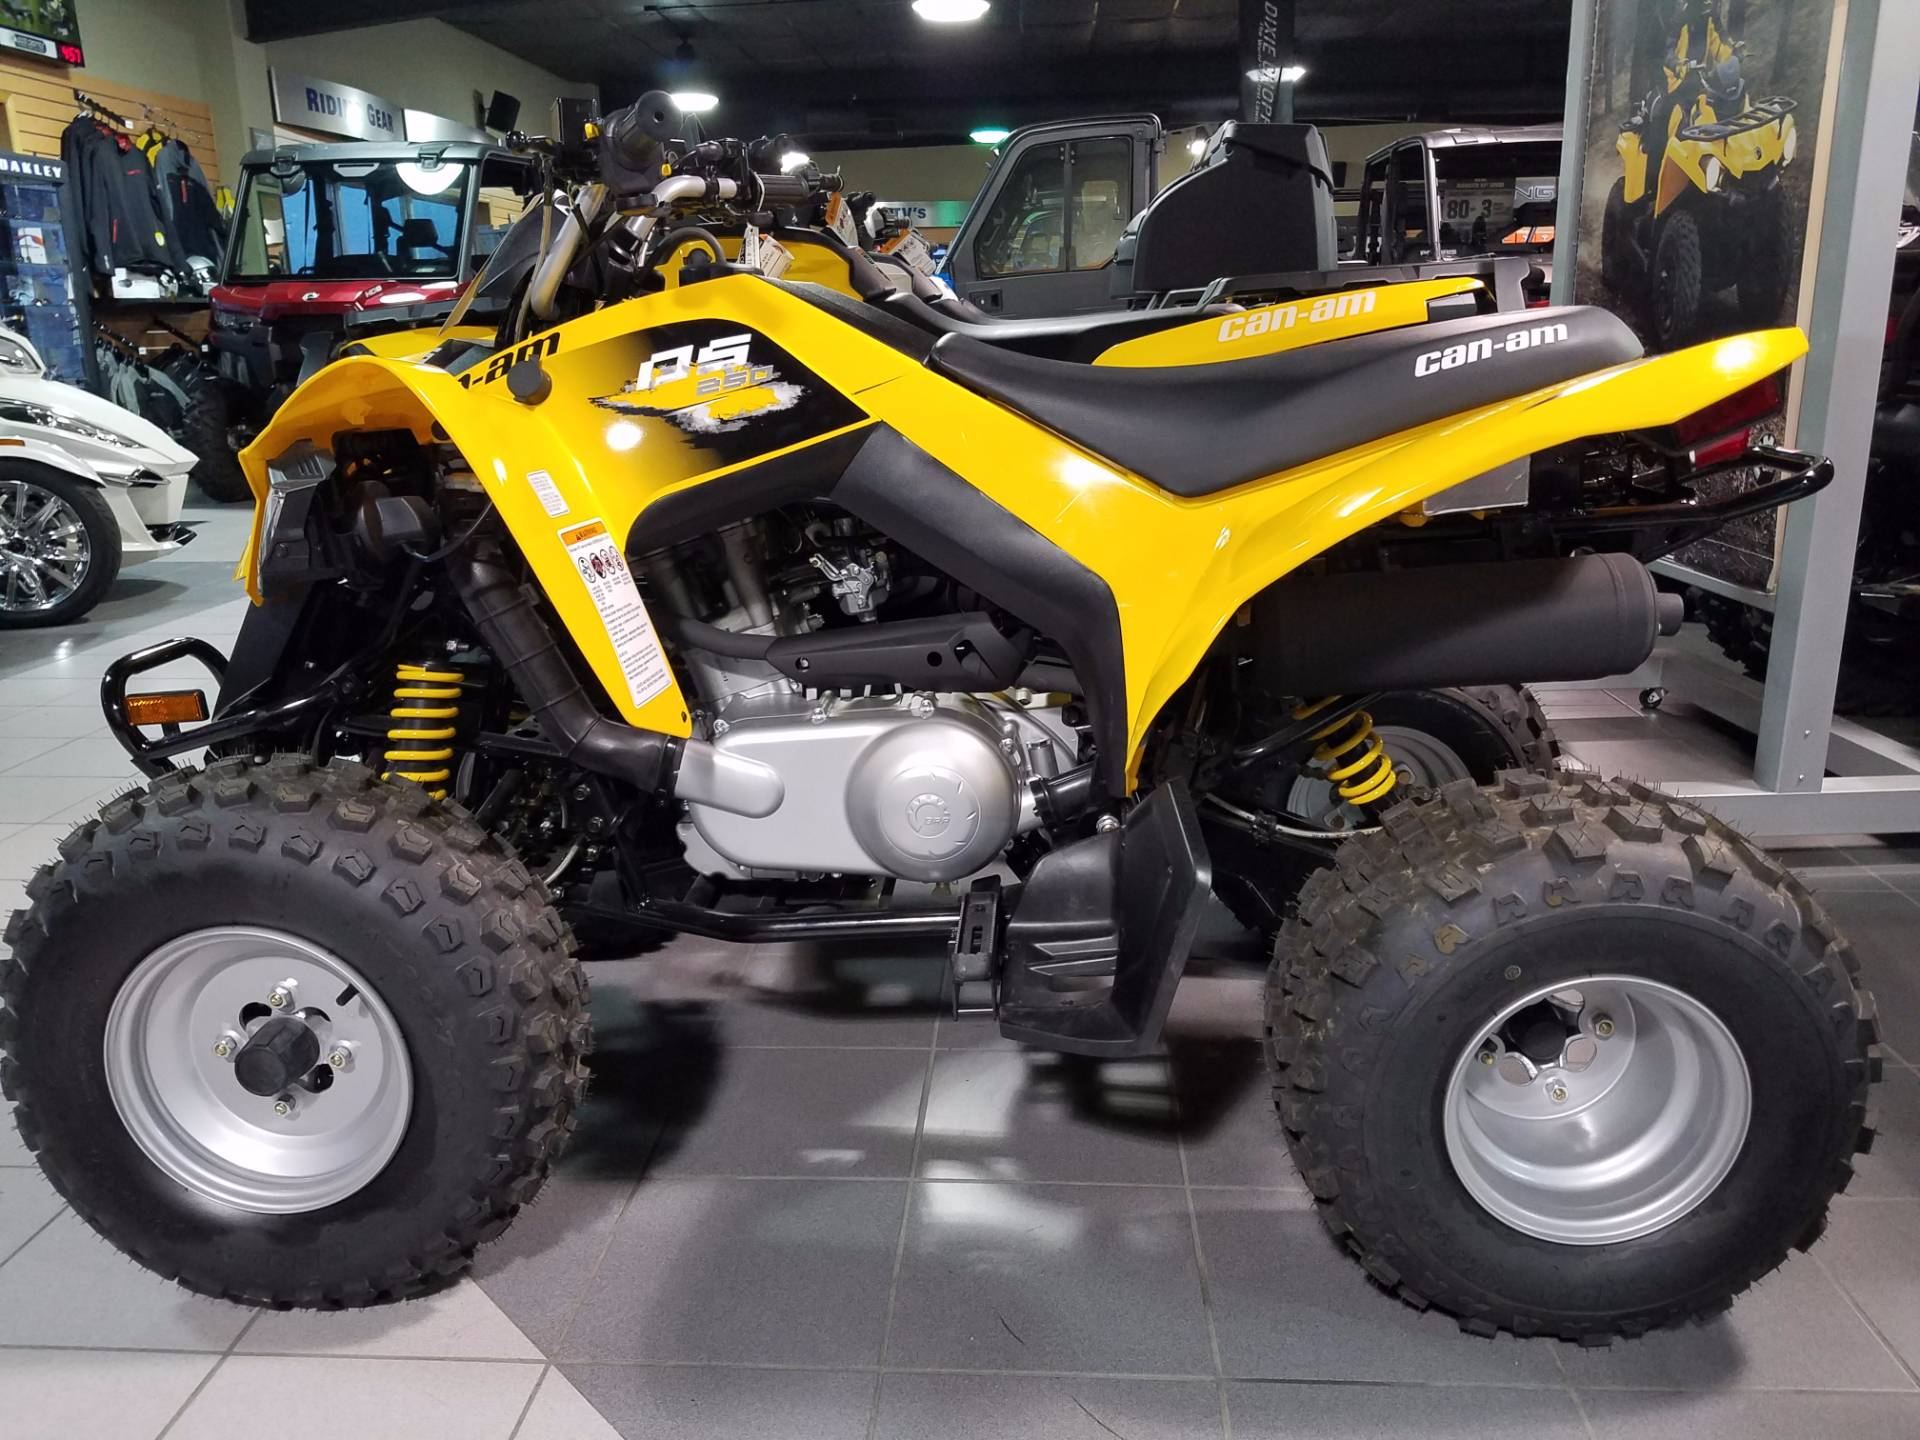 2016 Can-Am DS 250 for sale 17391